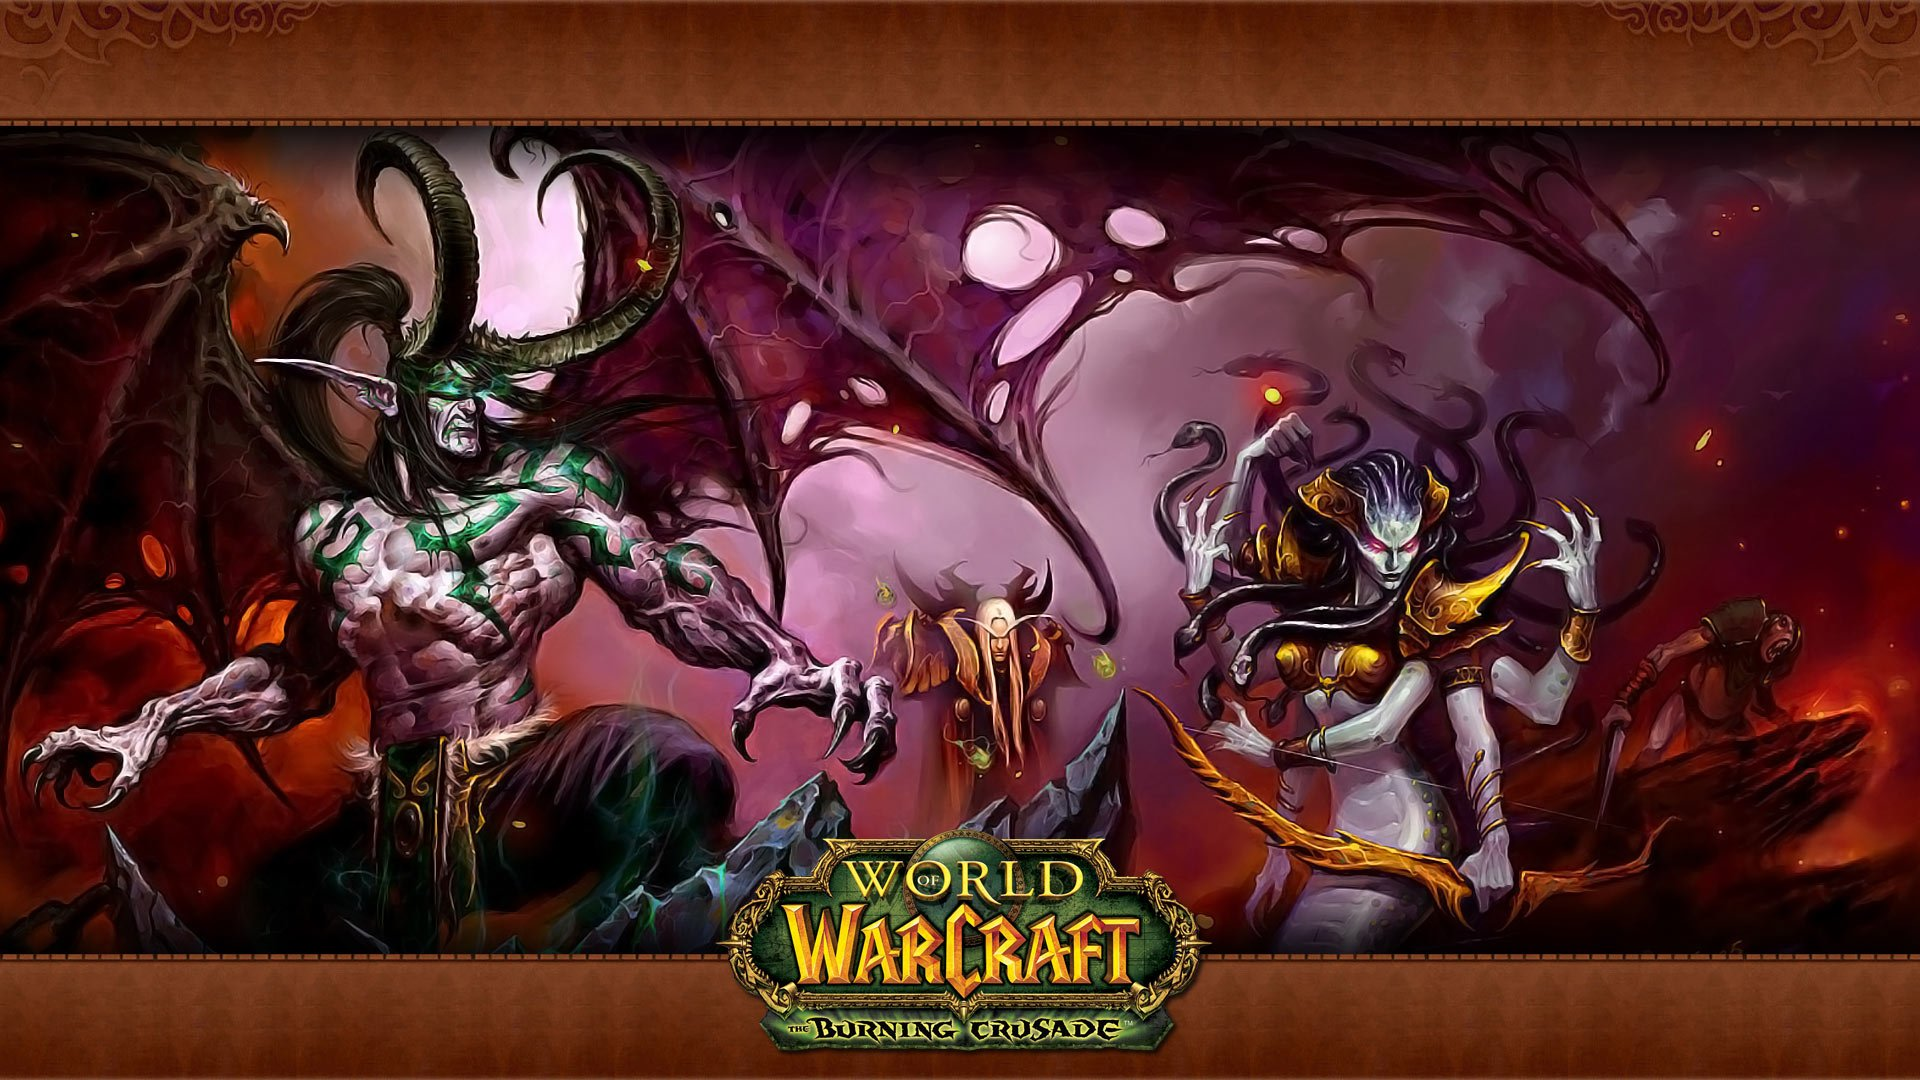 World Of Warcraft The Burning Crusade HD Wallpapers and 1920x1080